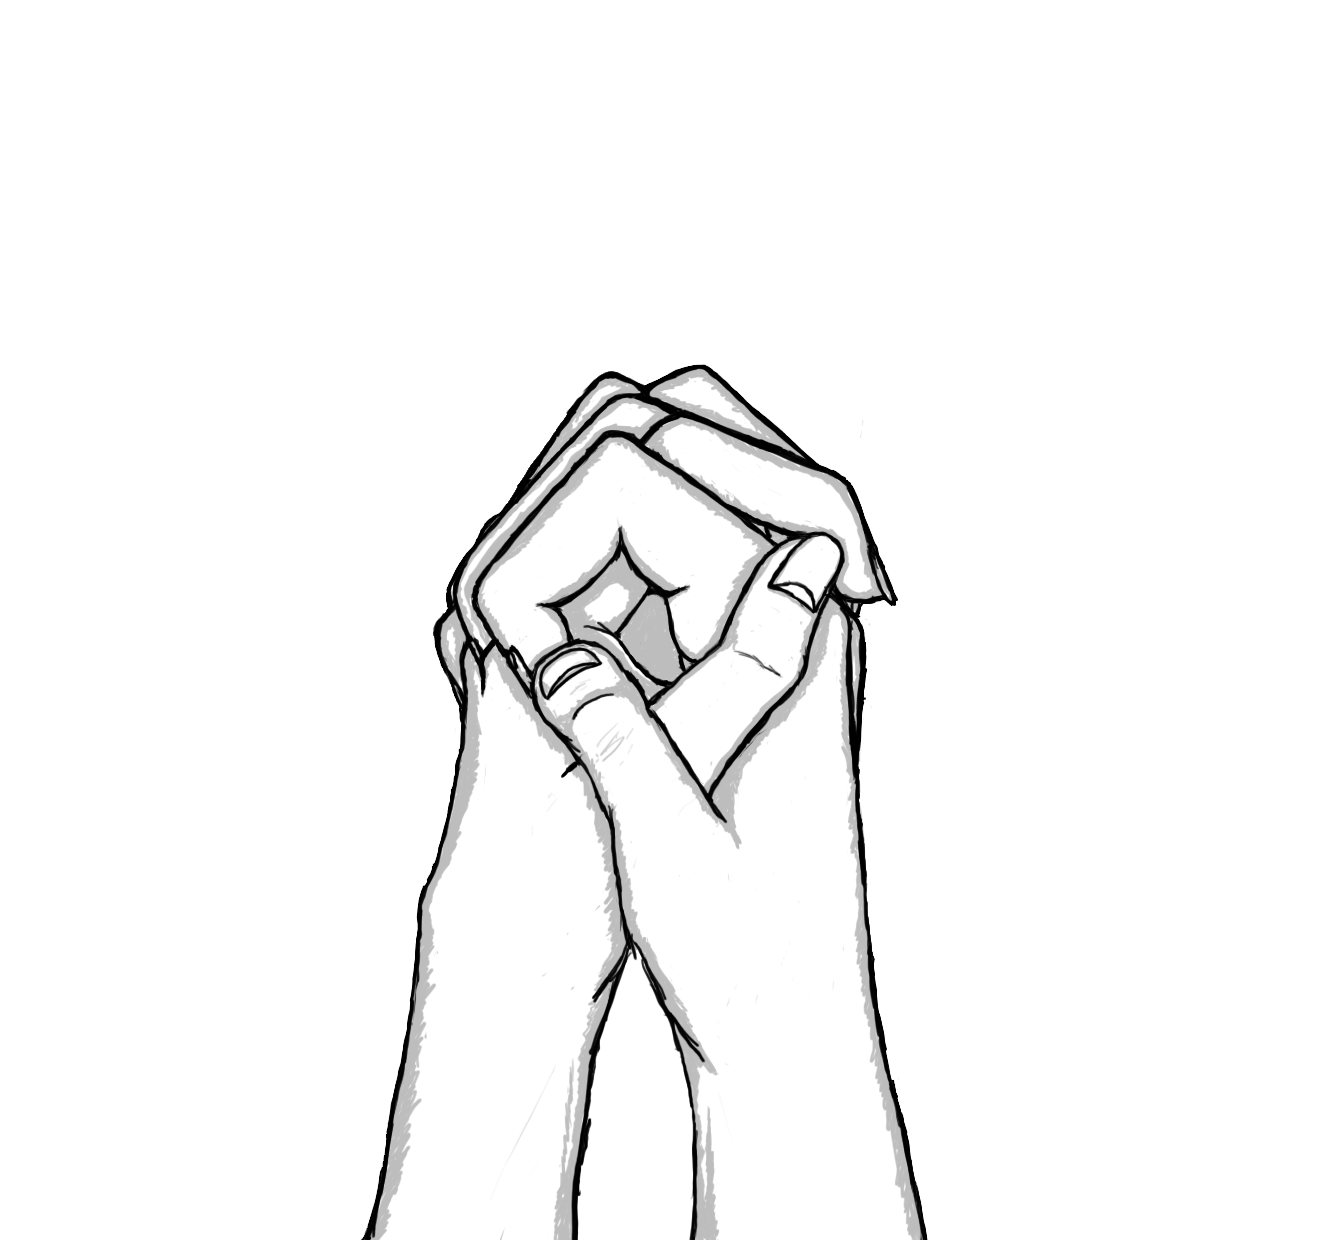 Drawings Of Holding Hands - Cliparts.co